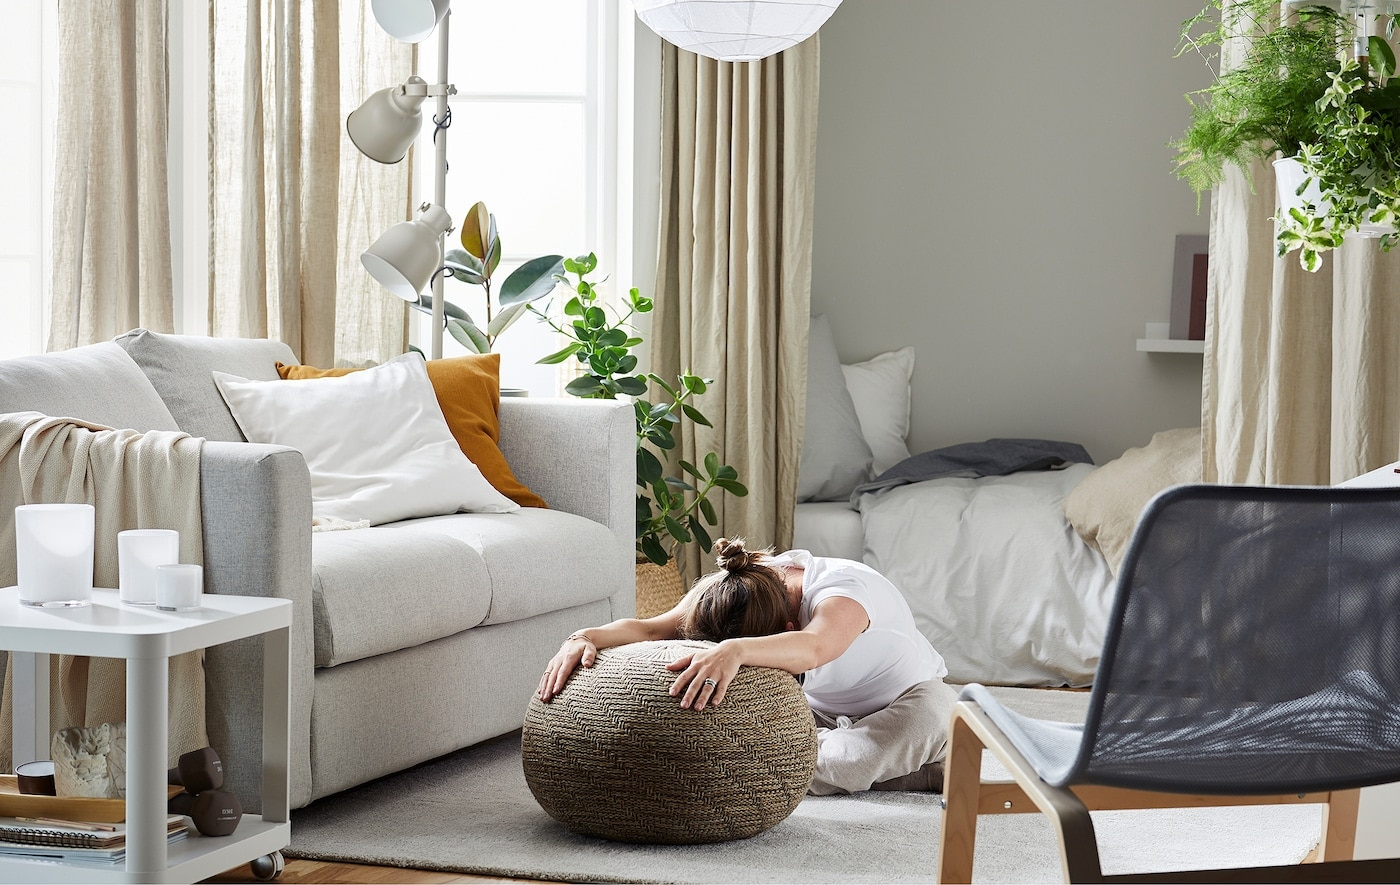 Link to IDEAS blog 'Create space for well-being habits at home' - image of a woman stretching in a living room.